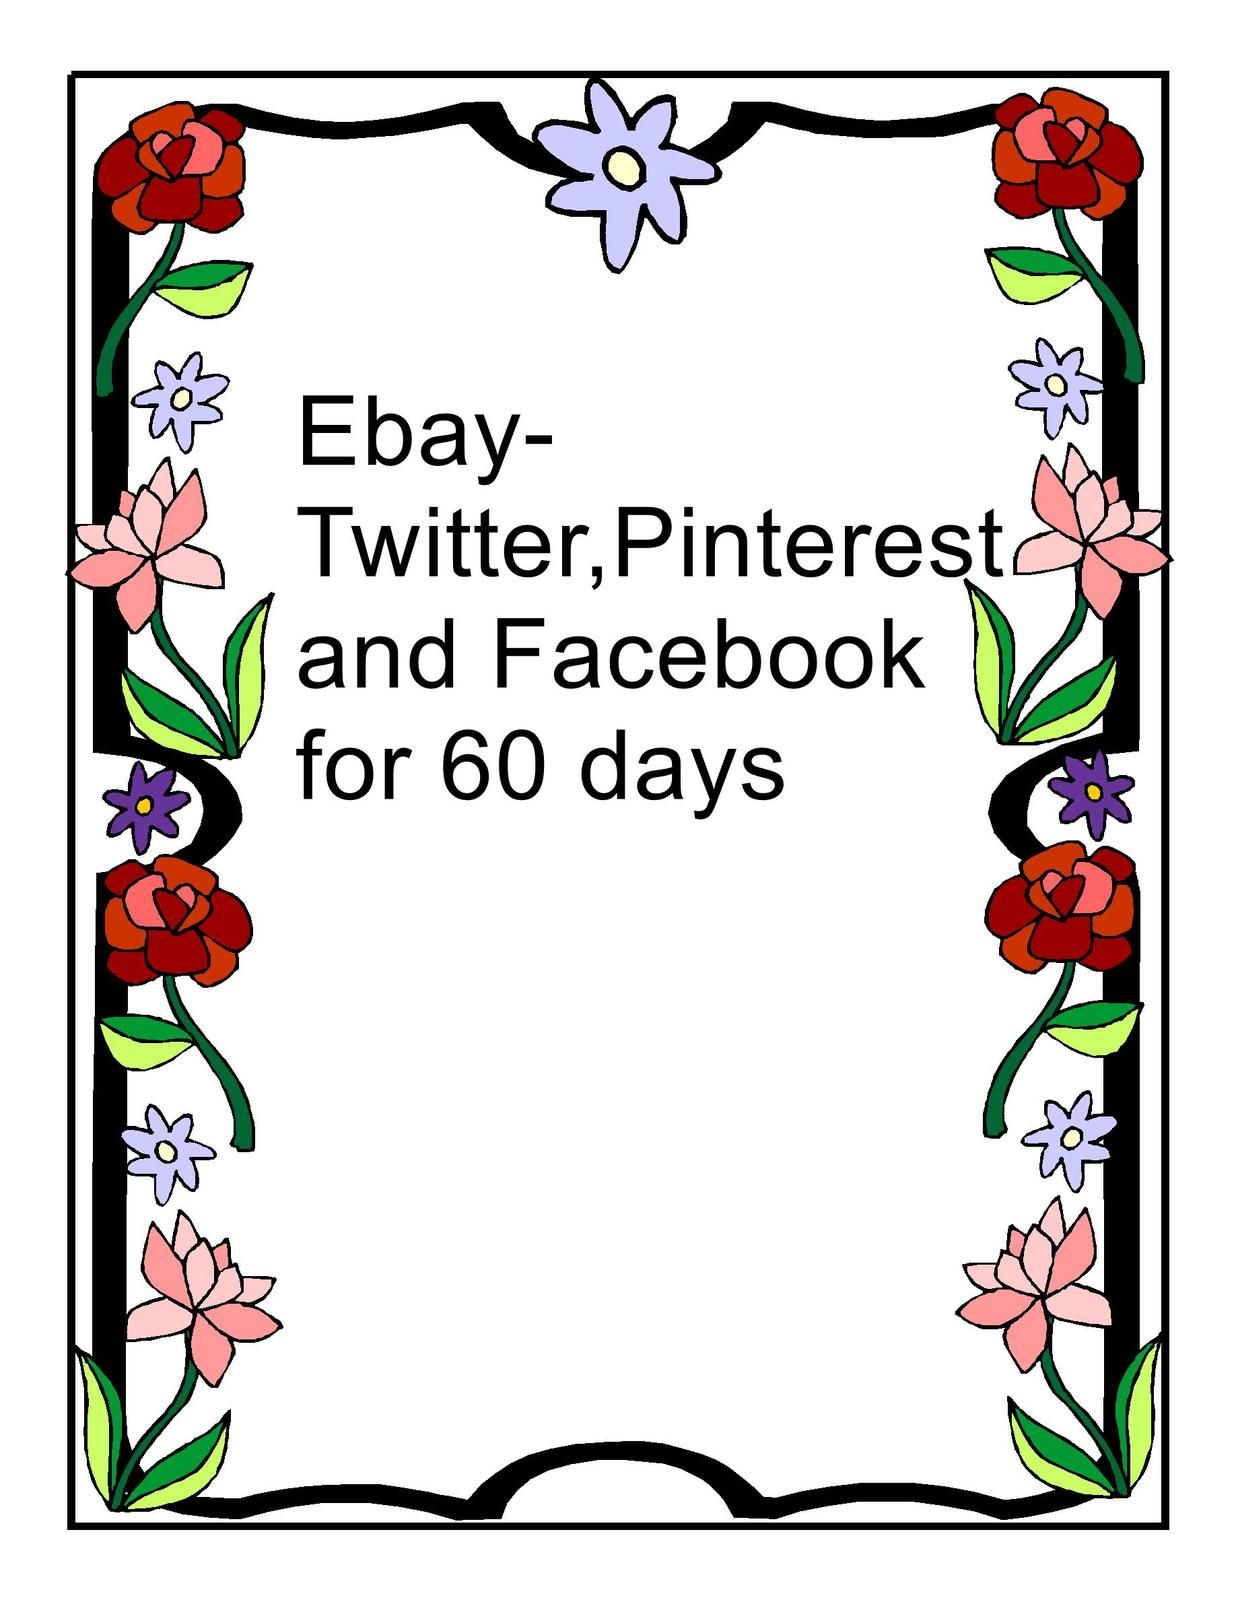 Ebay-Twitter,Pinterest and Facebook for 60 days #socialnetworking #promotions